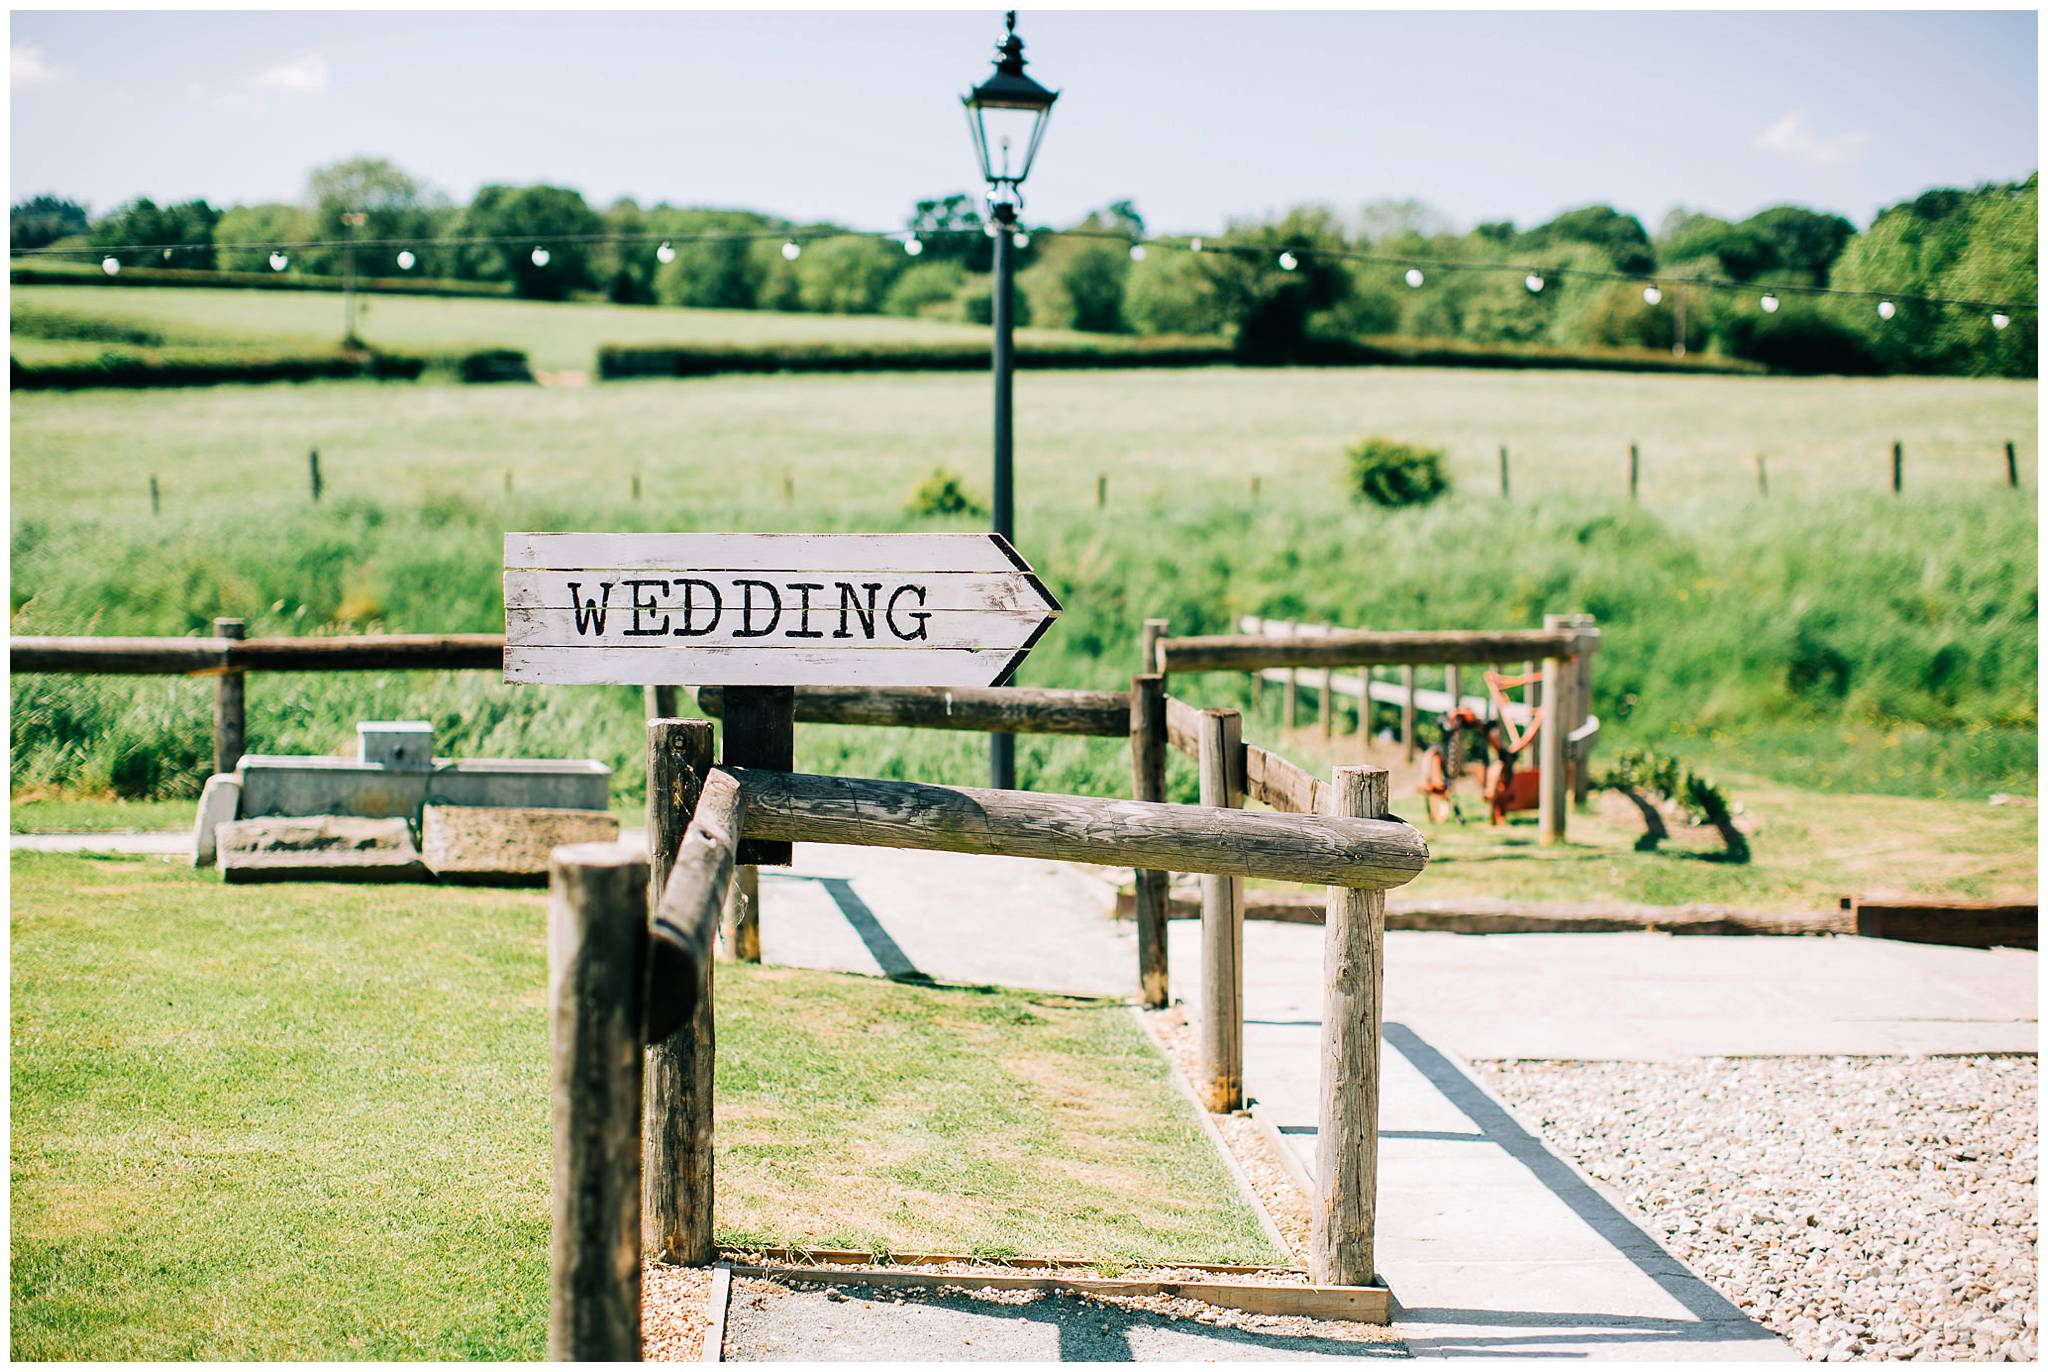 a rustic wedding sign in the shape of an arrow